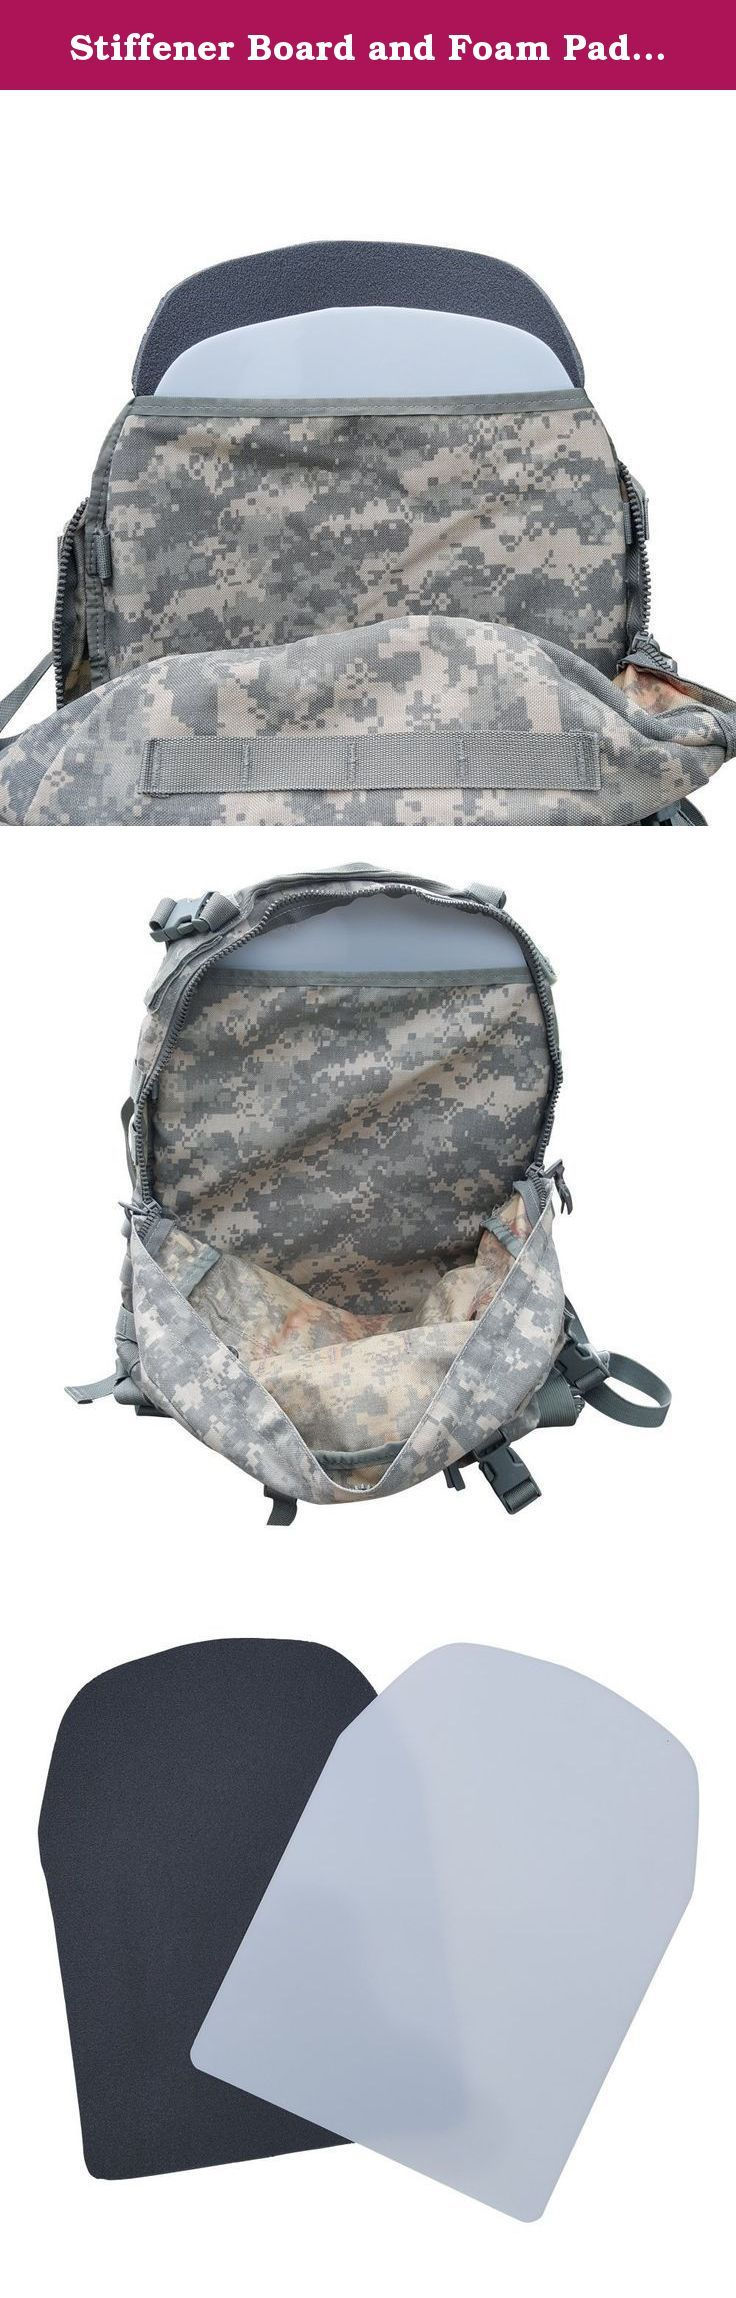 Stiffener Board and Foam Pad for ACU/DCU/Woodland Camo/Multi Cam 3 Day Assault Pack (Foam Pad and Stiffener Board). This product offers the only solution to an uncomfortable experience with the military grade ACU 3 Day Assault Pack. Move comfortably with the Foam Pad and Back Stiffener, developed for a perfect fit in an ACU 3 Day Assault Pack, ensuring the most ergonomic wear possible. Simply place this product on the inside rear pocket panel of the pack and notice immediate relief. The...